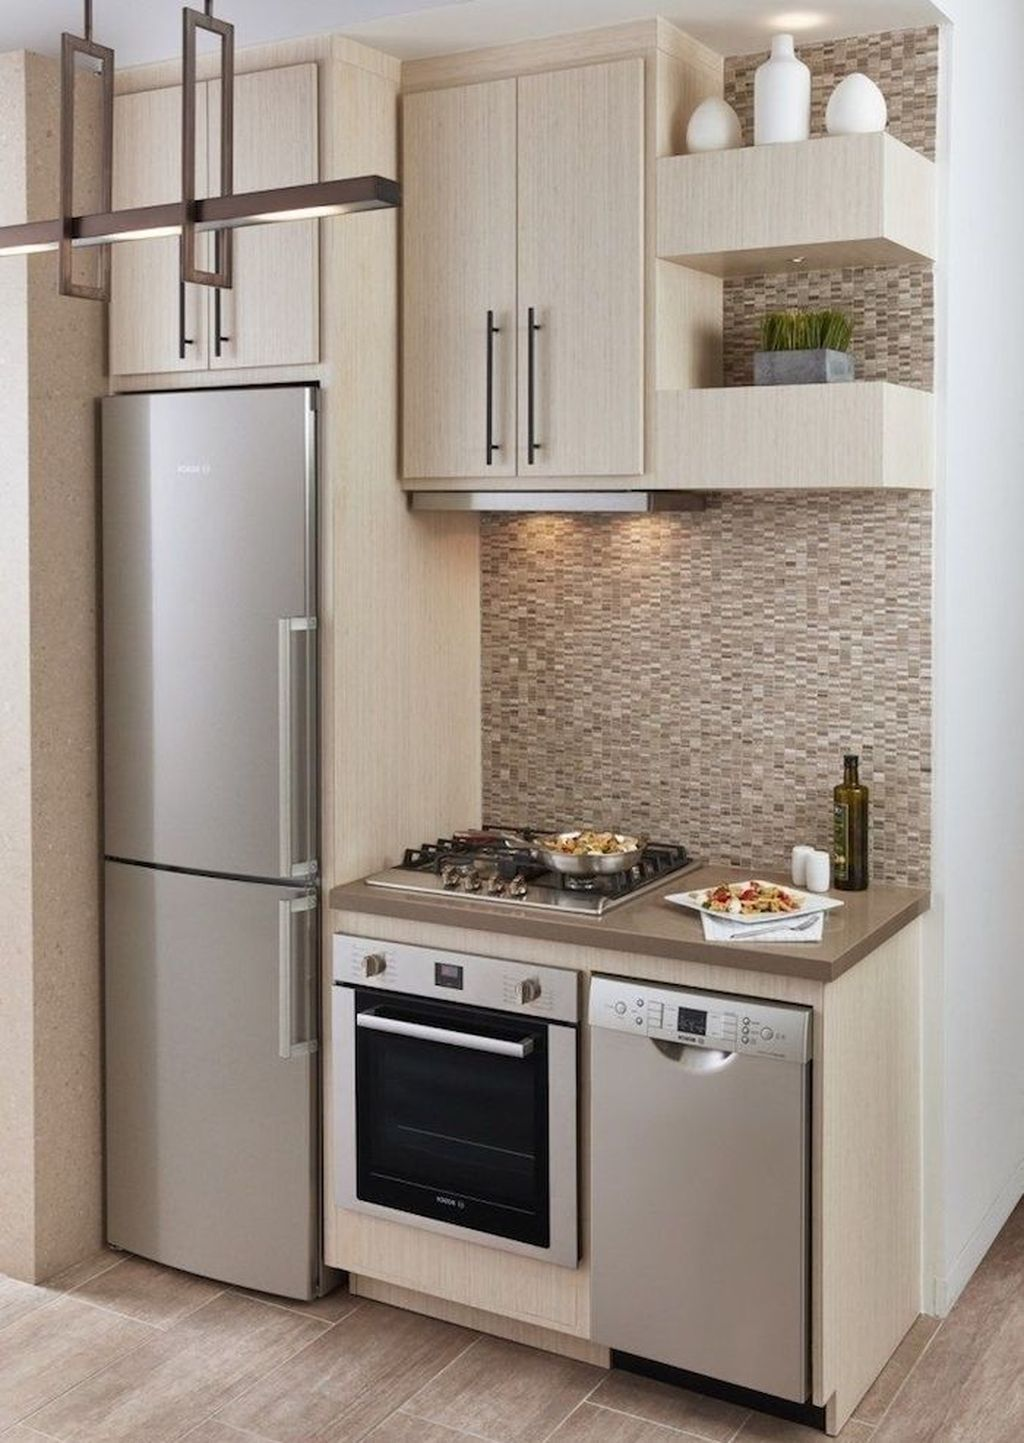 Nice 49 Creative Small Kitchen Design Ideas For Your